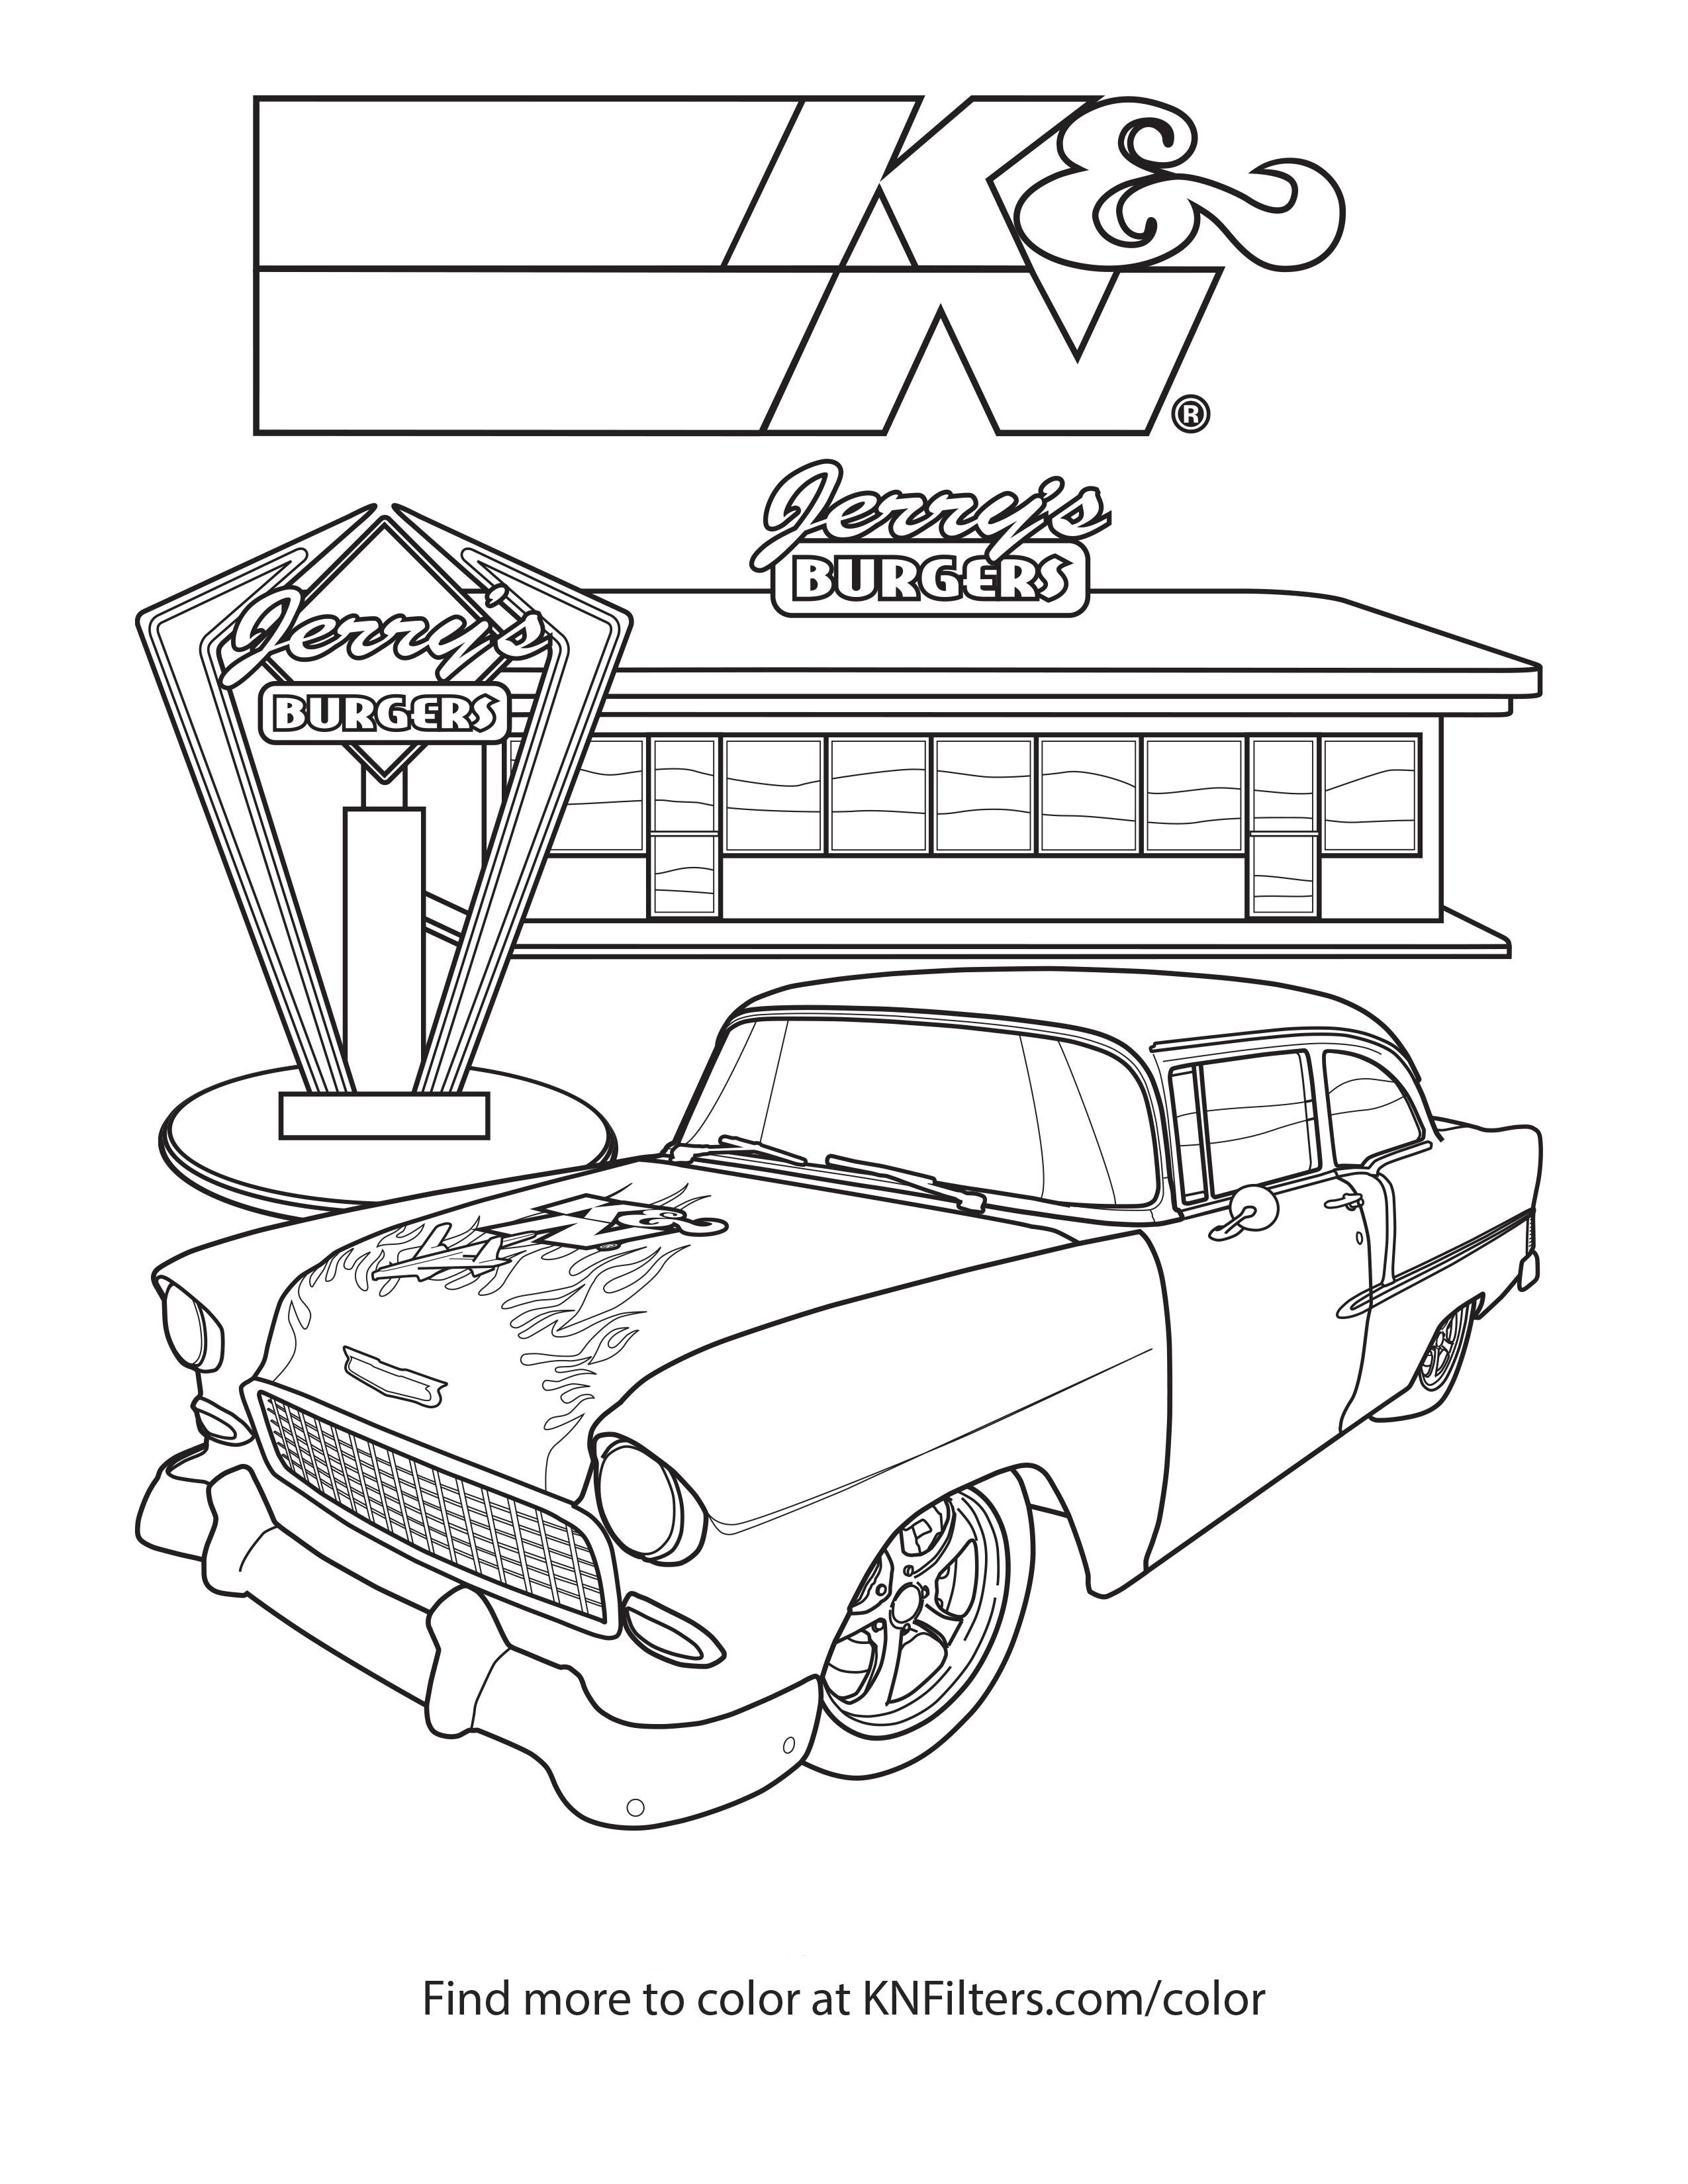 Images Of Coloring Pages Kn Printable Coloring Pages For Kids